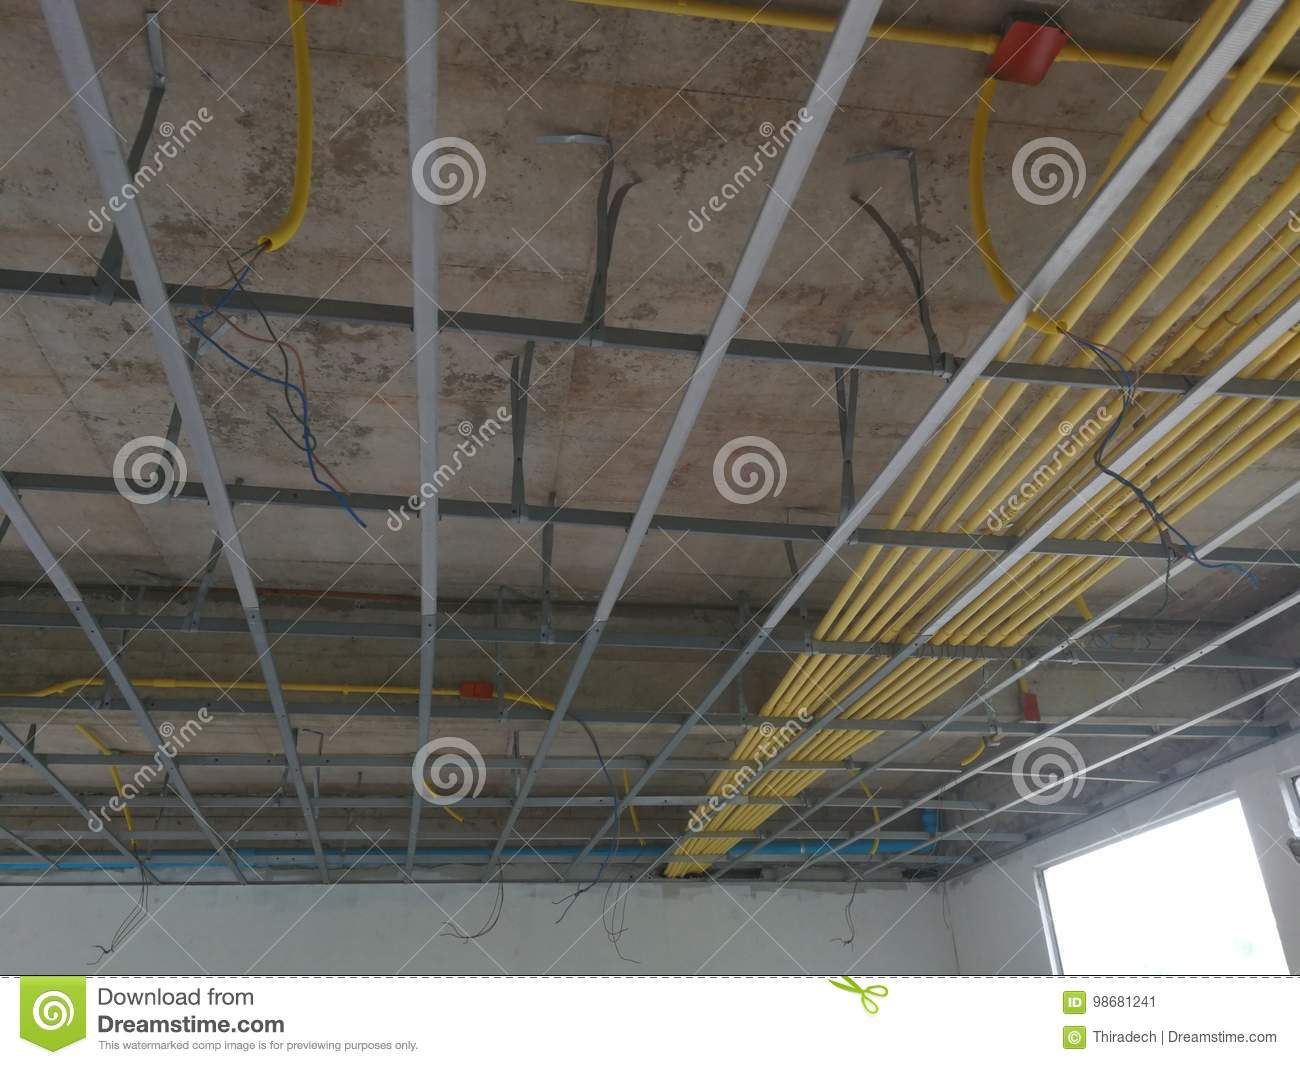 Outstanding Install The Ceiling Frame And Wiring Pipe Stock Image Image Of Wiring Digital Resources Sapebecompassionincorg